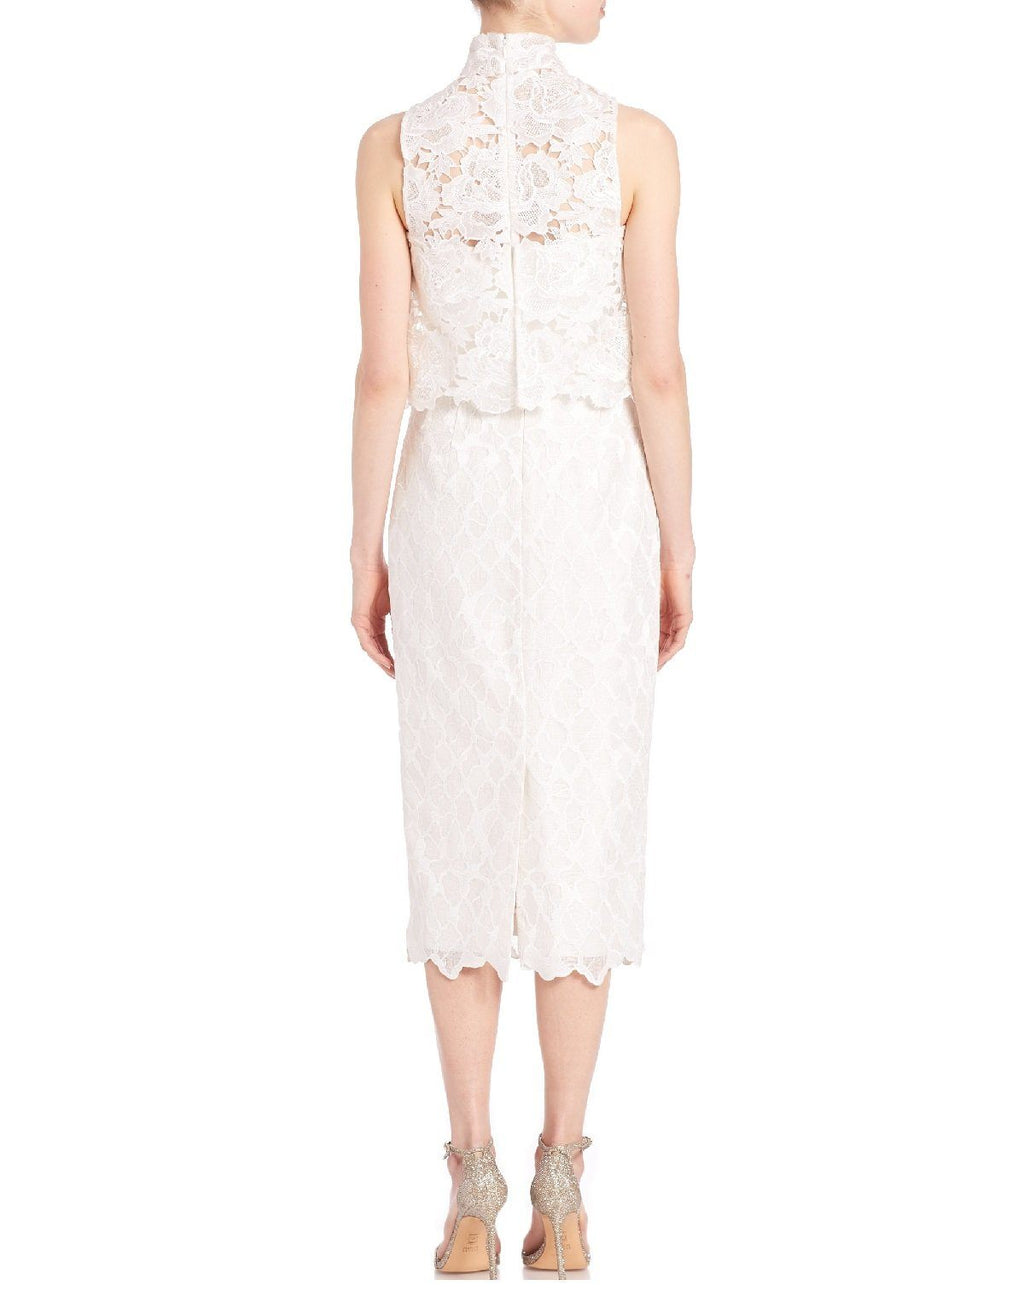 Monique Lhuillier Women's White 2-piece Mock Neck Faux Lace Dress